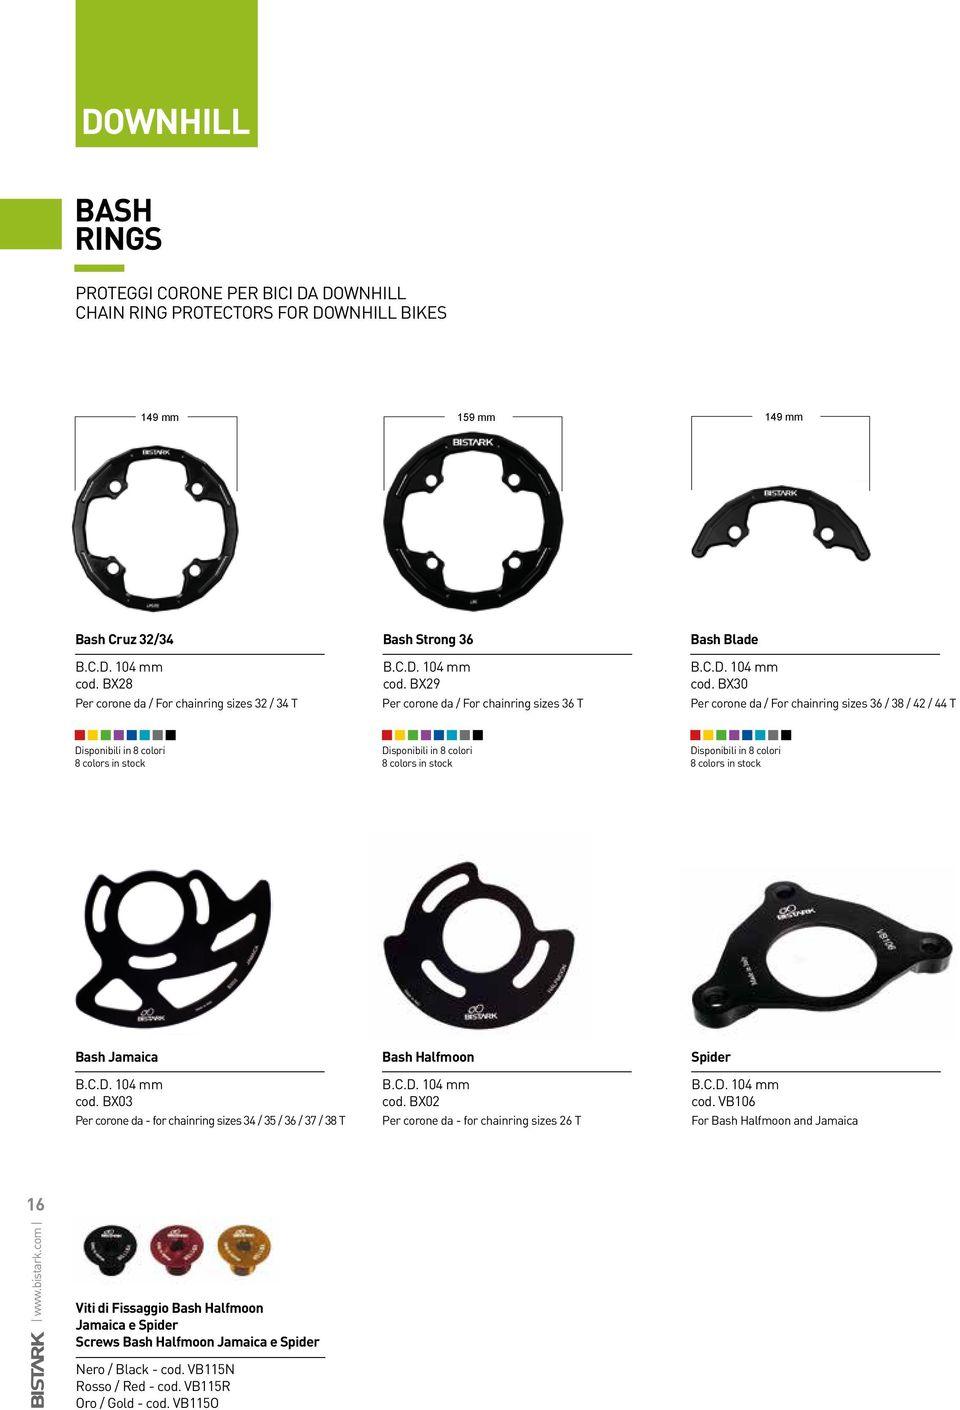 BX30 Per corone da / For chainring sizes 32 / 34 T Per corone da / For chainring sizes 36 T Per corone da / For chainring sizes 36 / 38 / 42 / 44 T Disponibili in 8 colori 8 colors in stock